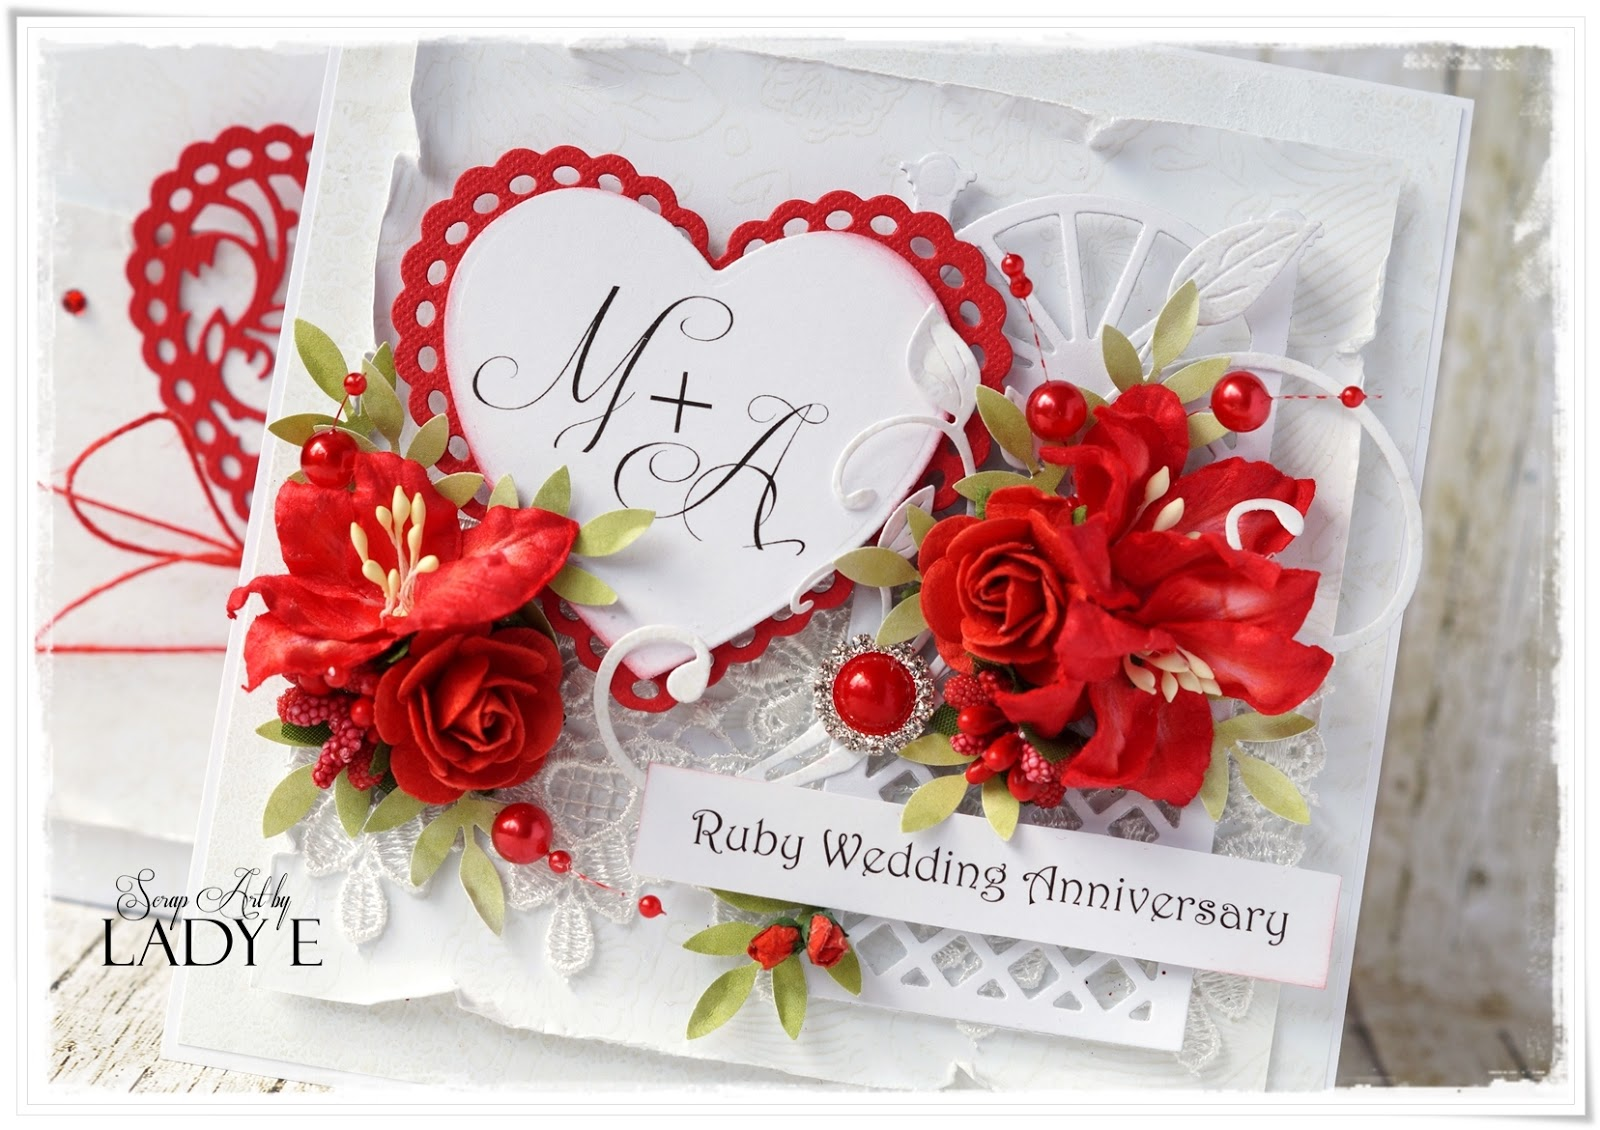 2 wedding anniversary cards - Wedding Anniversary Cards